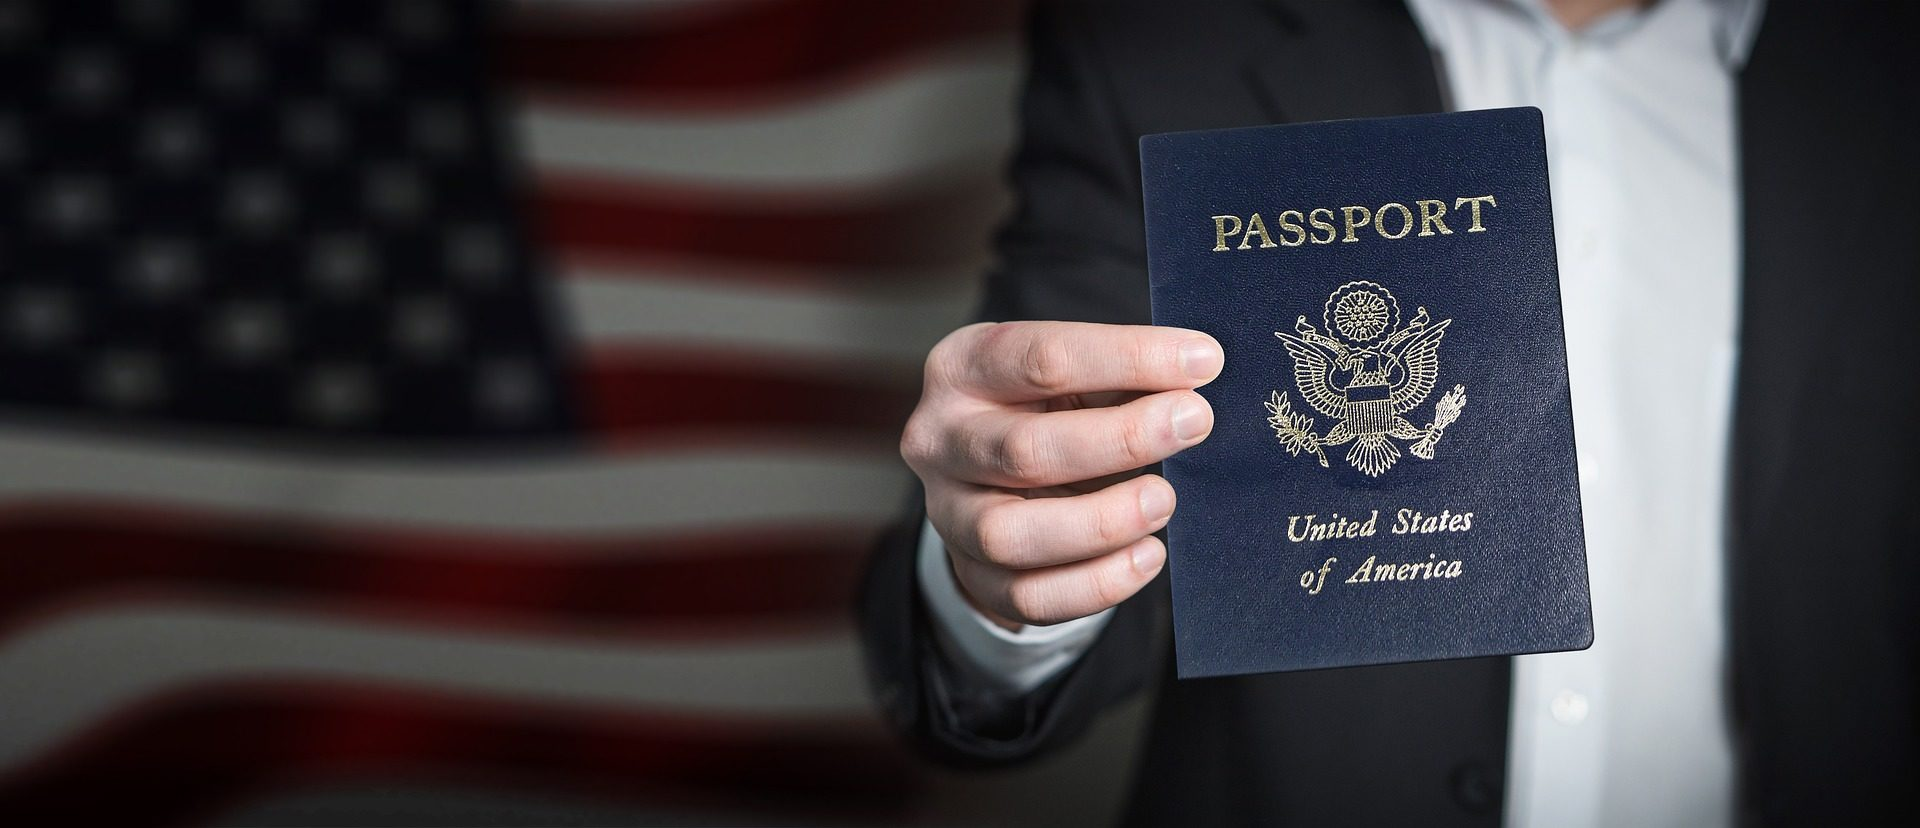 Person holding up U.S. Passport